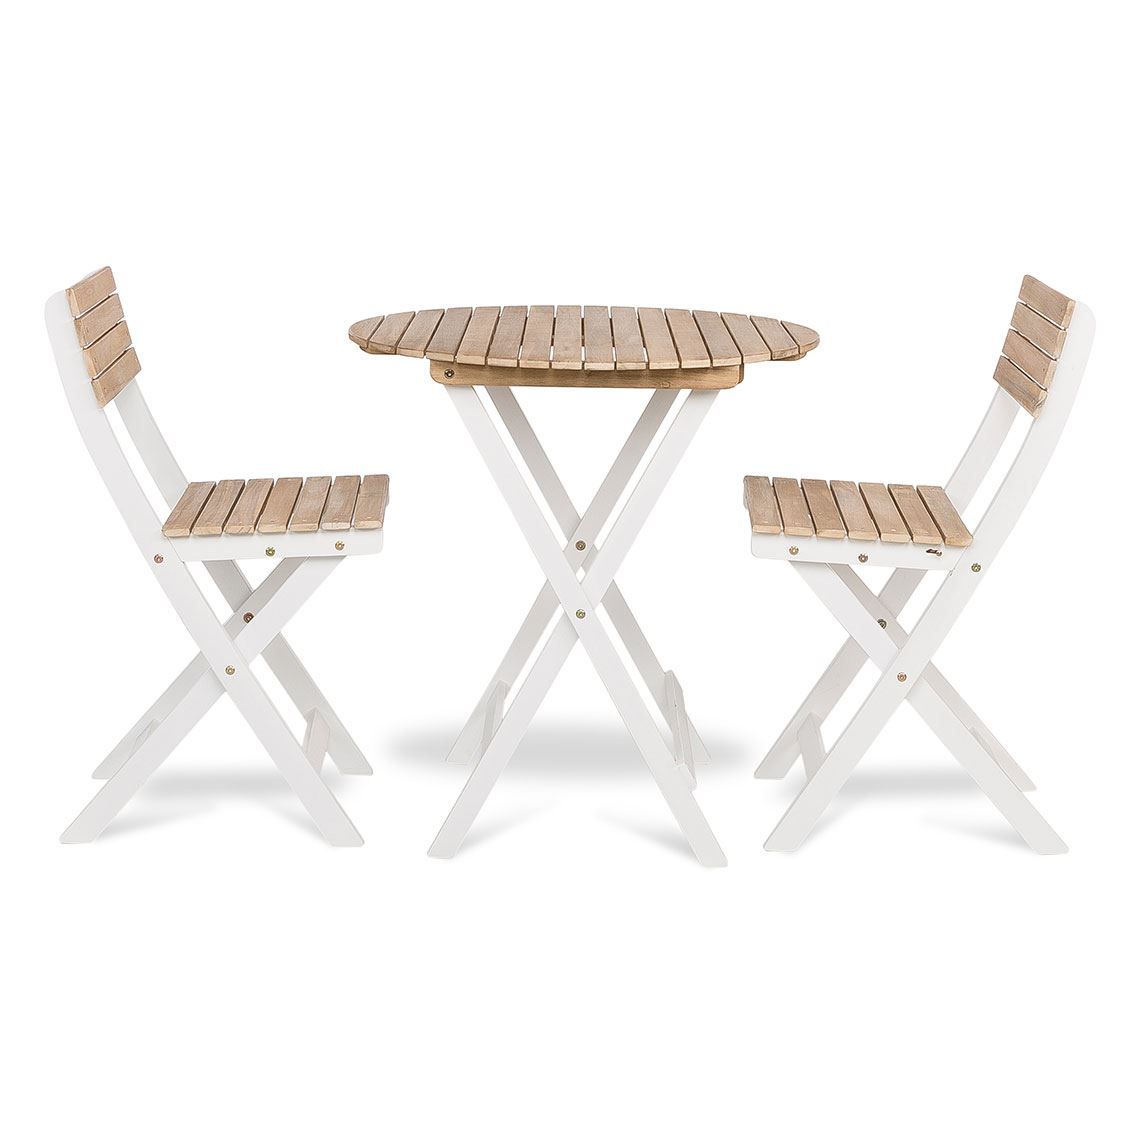 Atlantic 3 Piece Outdoor Dining Set, Acacia Wood Pertaining To Most Up To Date Bedfo 3 Piece Dining Sets (View 16 of 20)